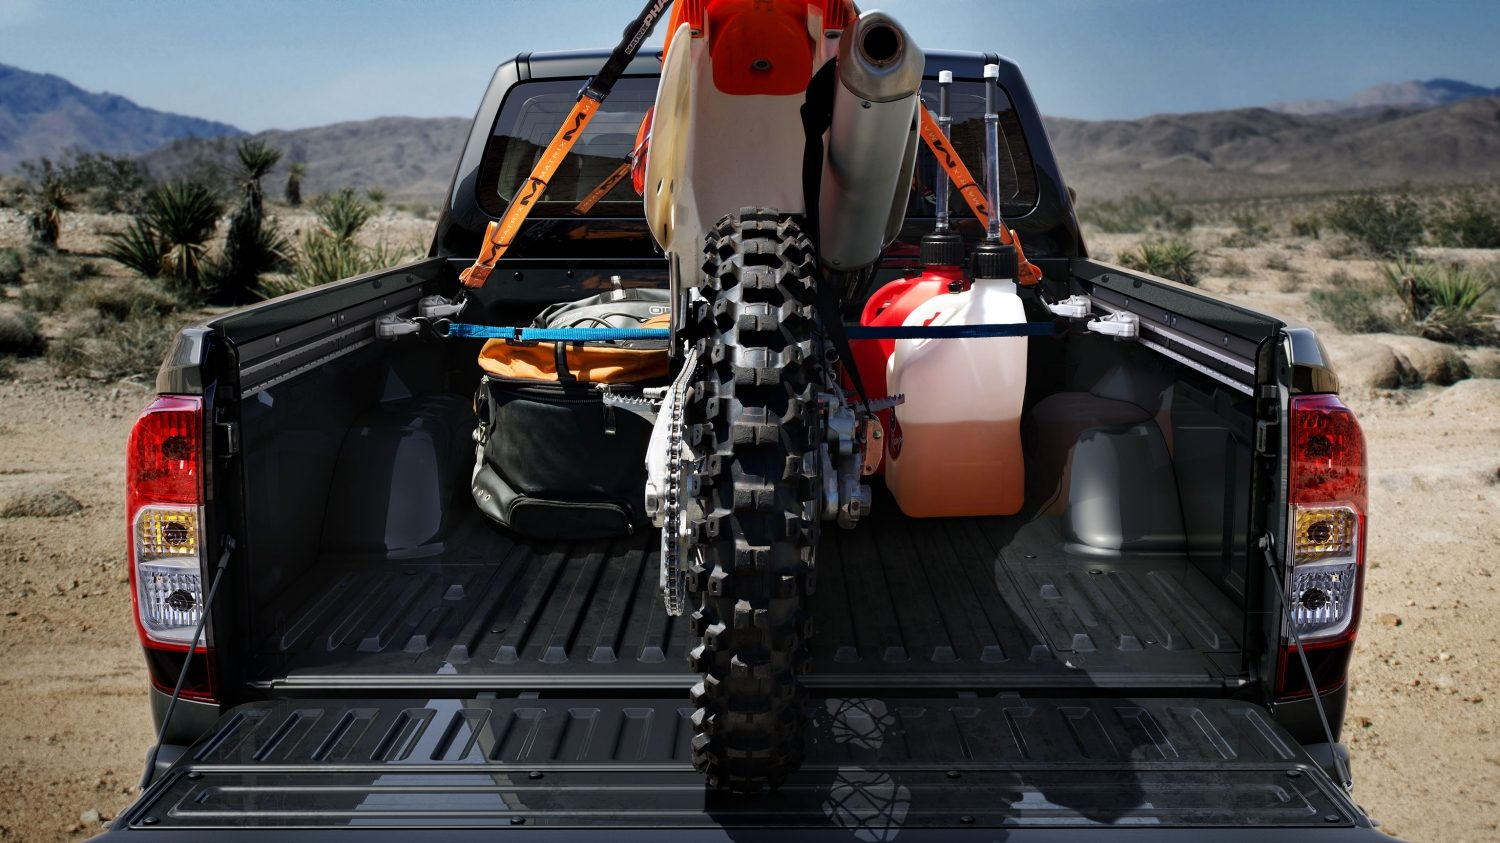 Nissan NP300 Navara - Rear view of cargo bed with dirt bike